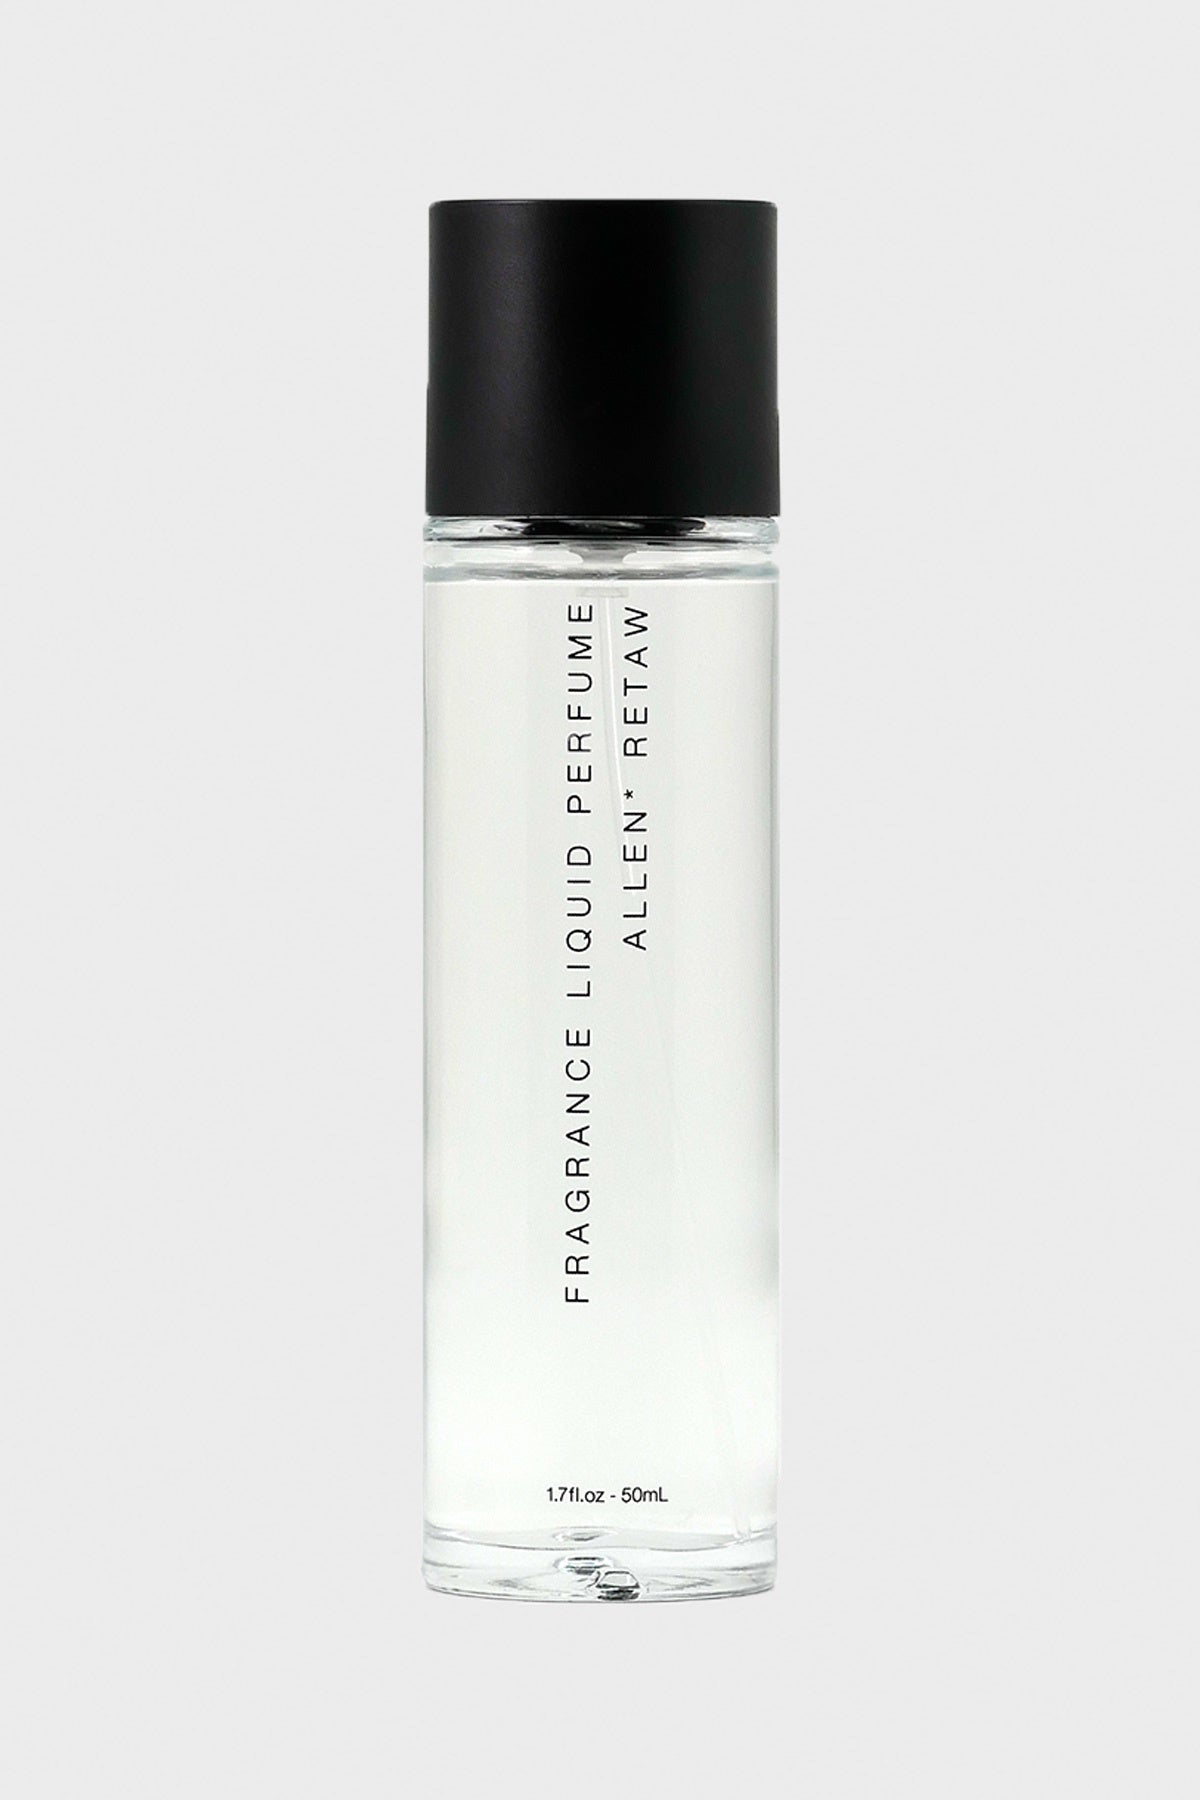 retaW - Fragrance Liquid Perfume - Allen - Canoe Club